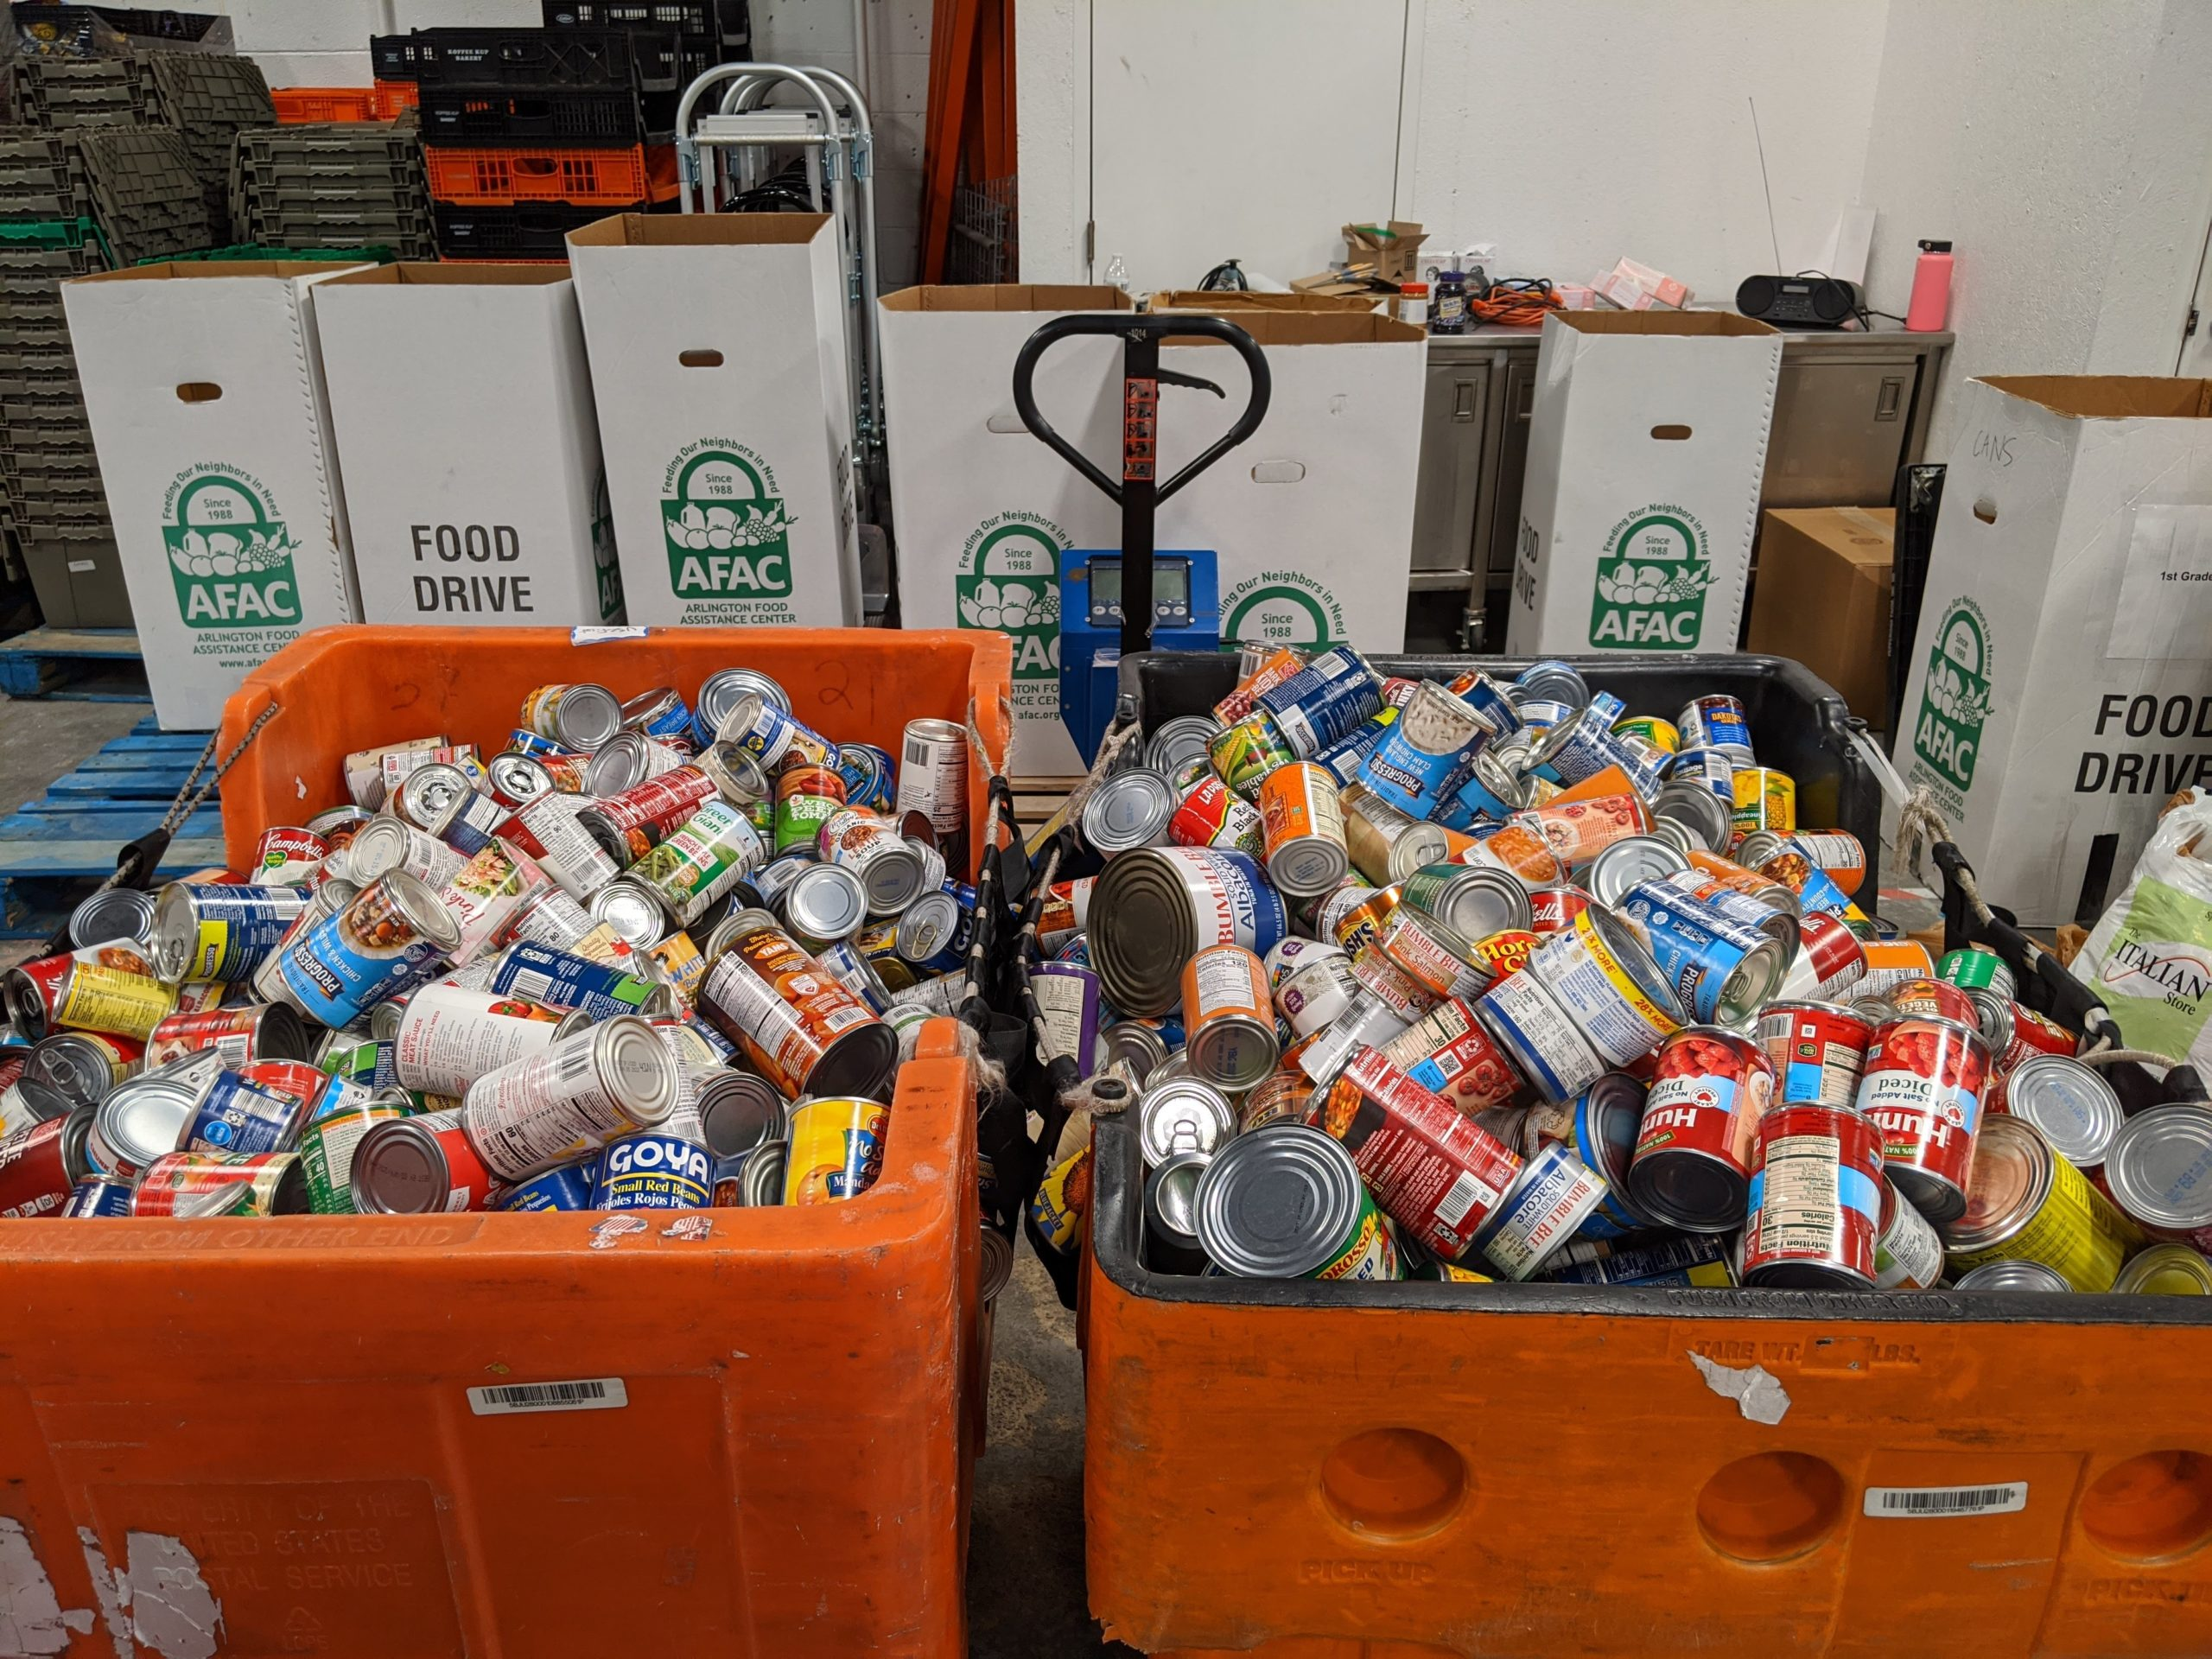 carts and boxes full of food donations